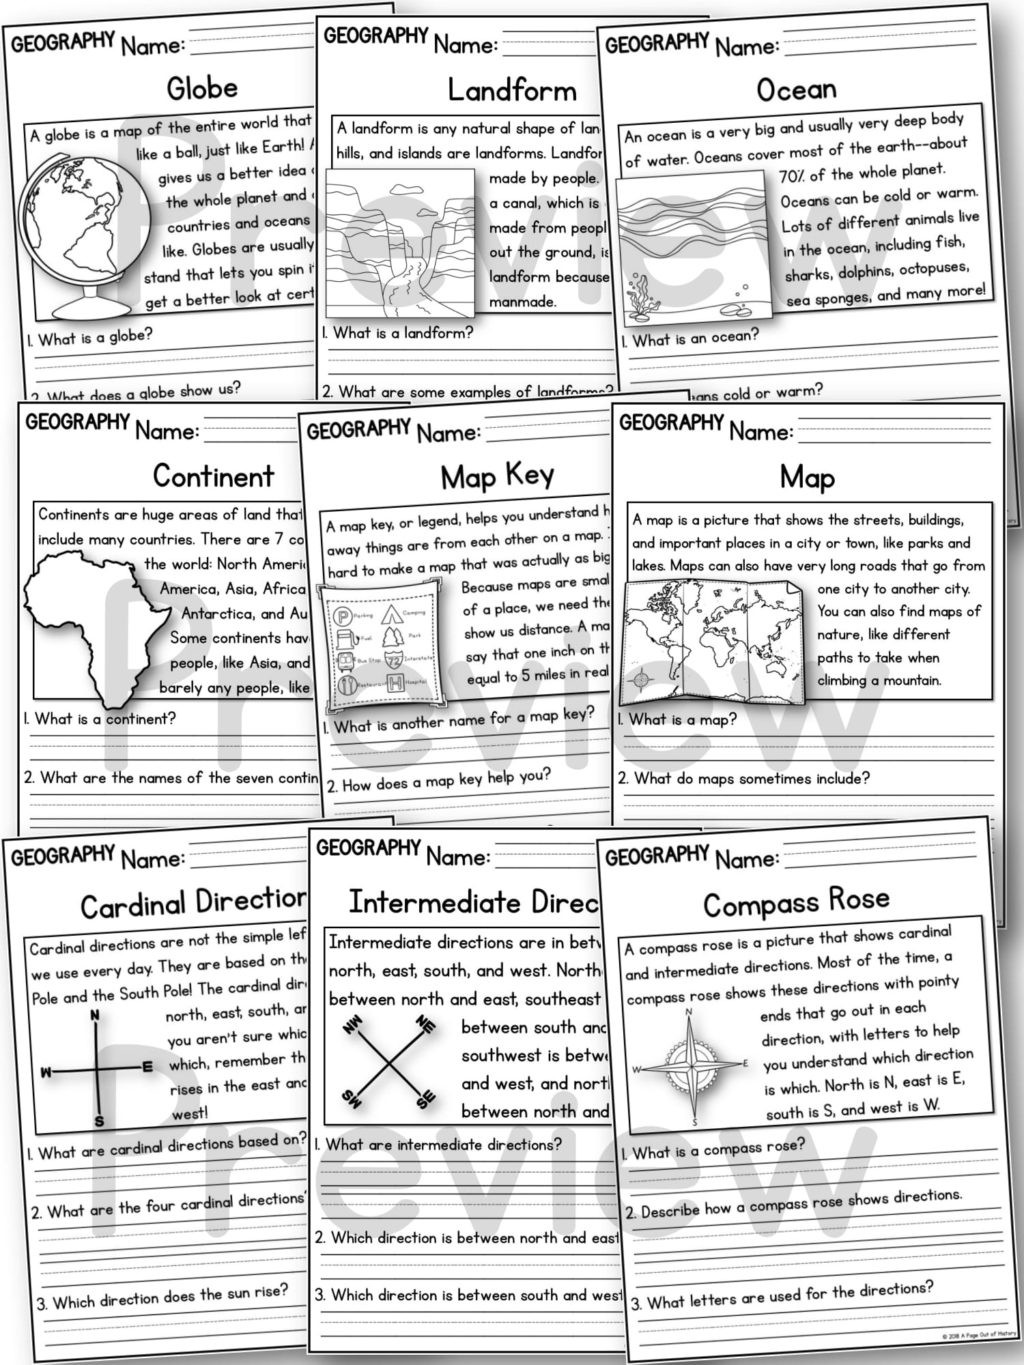 Landform Worksheets for 2nd Grade Worksheet Phenomenal Readingn 1st Grade Line 2nd Pdf